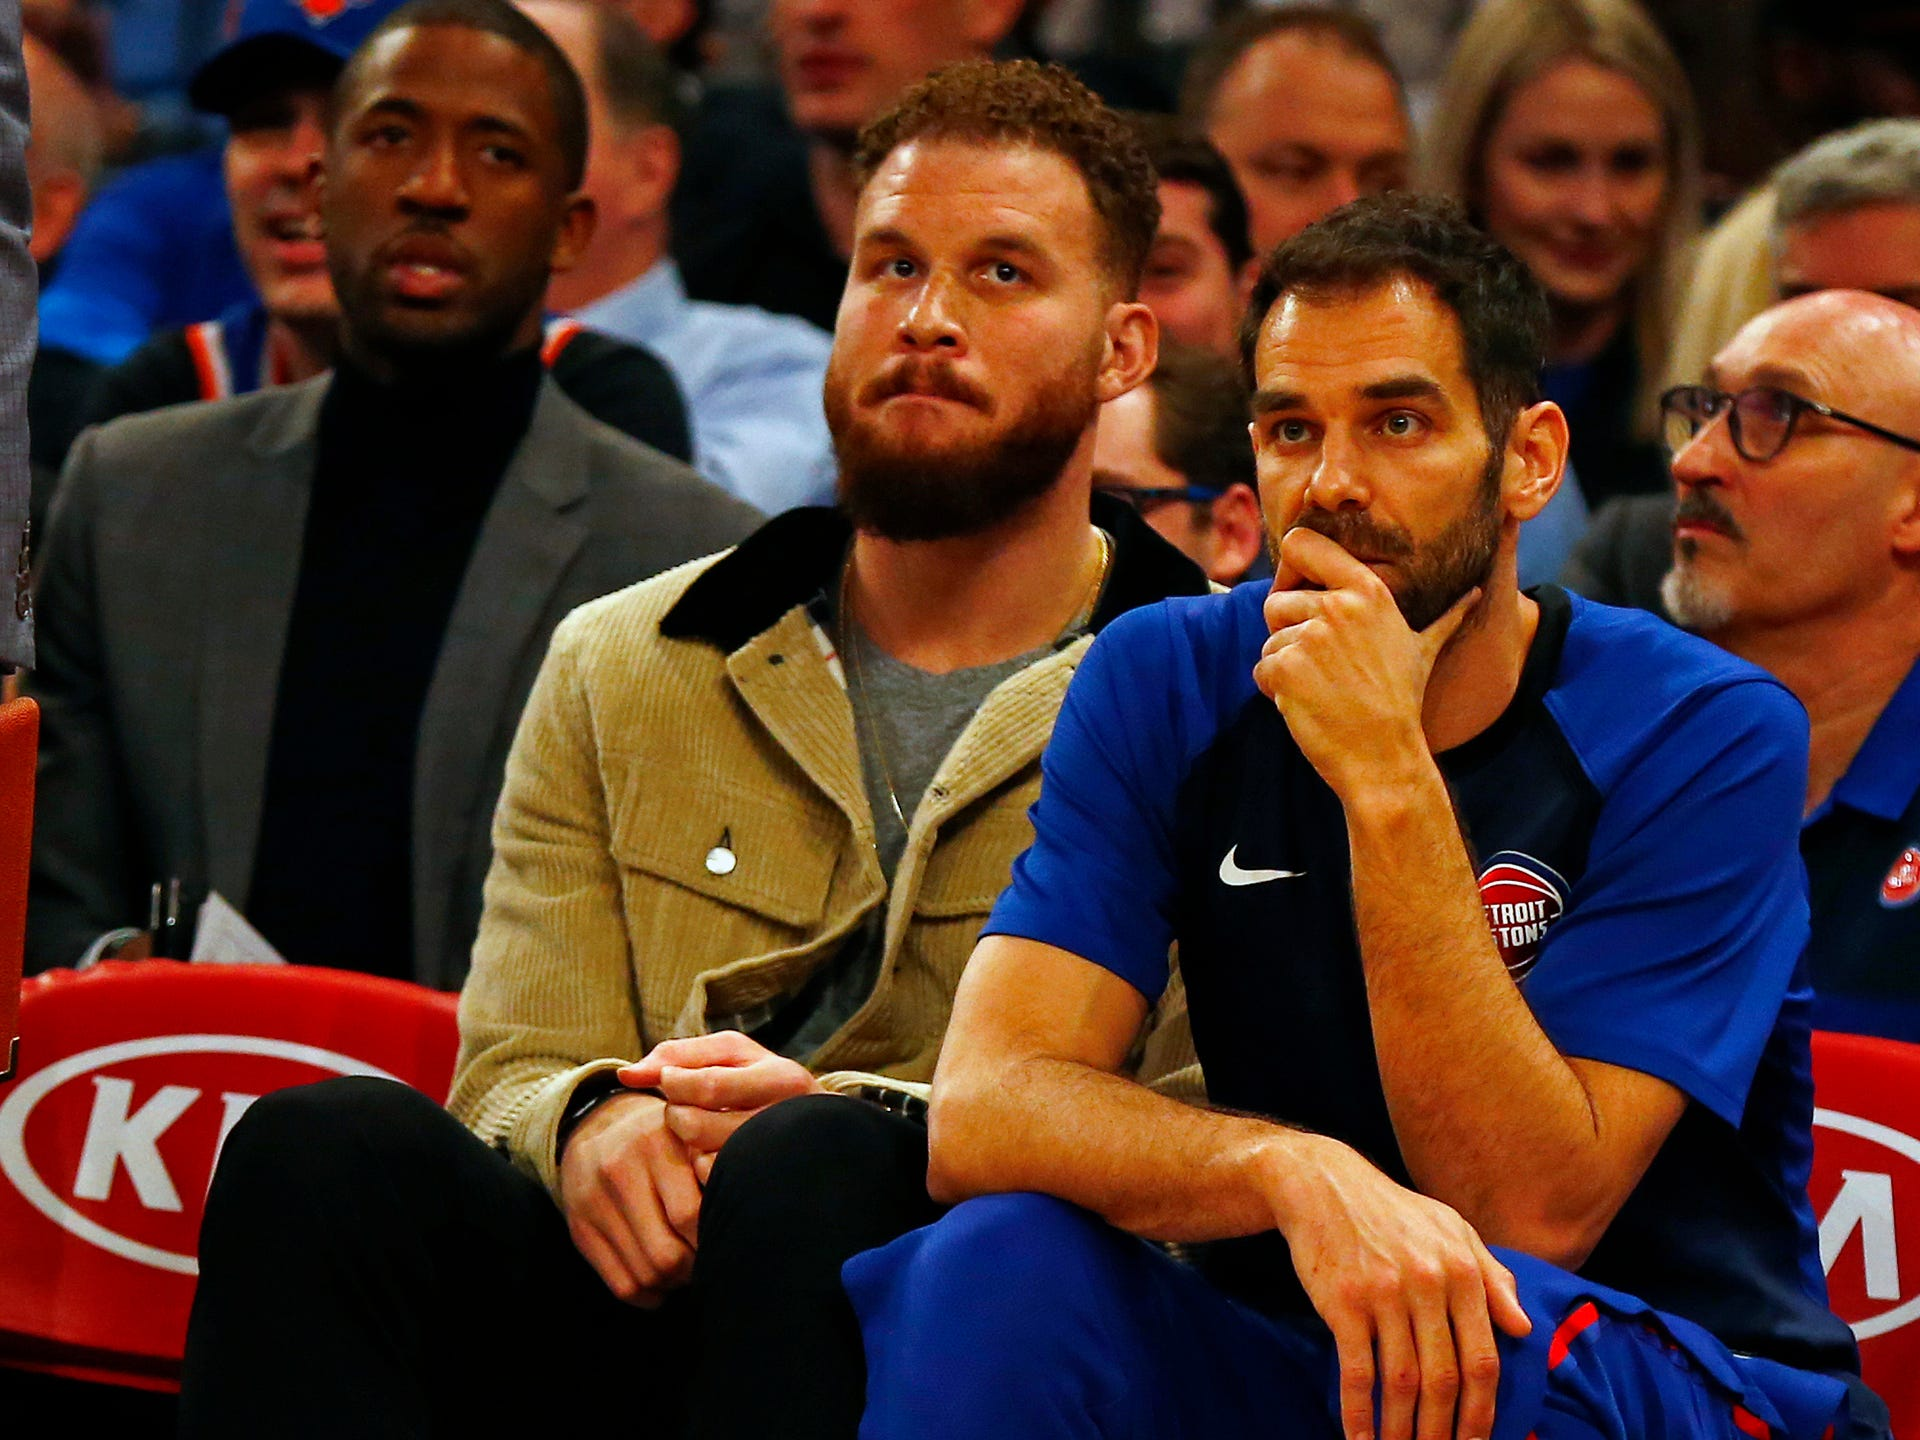 Detroit Pistons forward Blake Griffin (23) and Detroit Pistons guard Jose Calderon (81) looks on against the New York Knicks during the first half at Madison Square Garden on Wednesday, April 10, 2019.